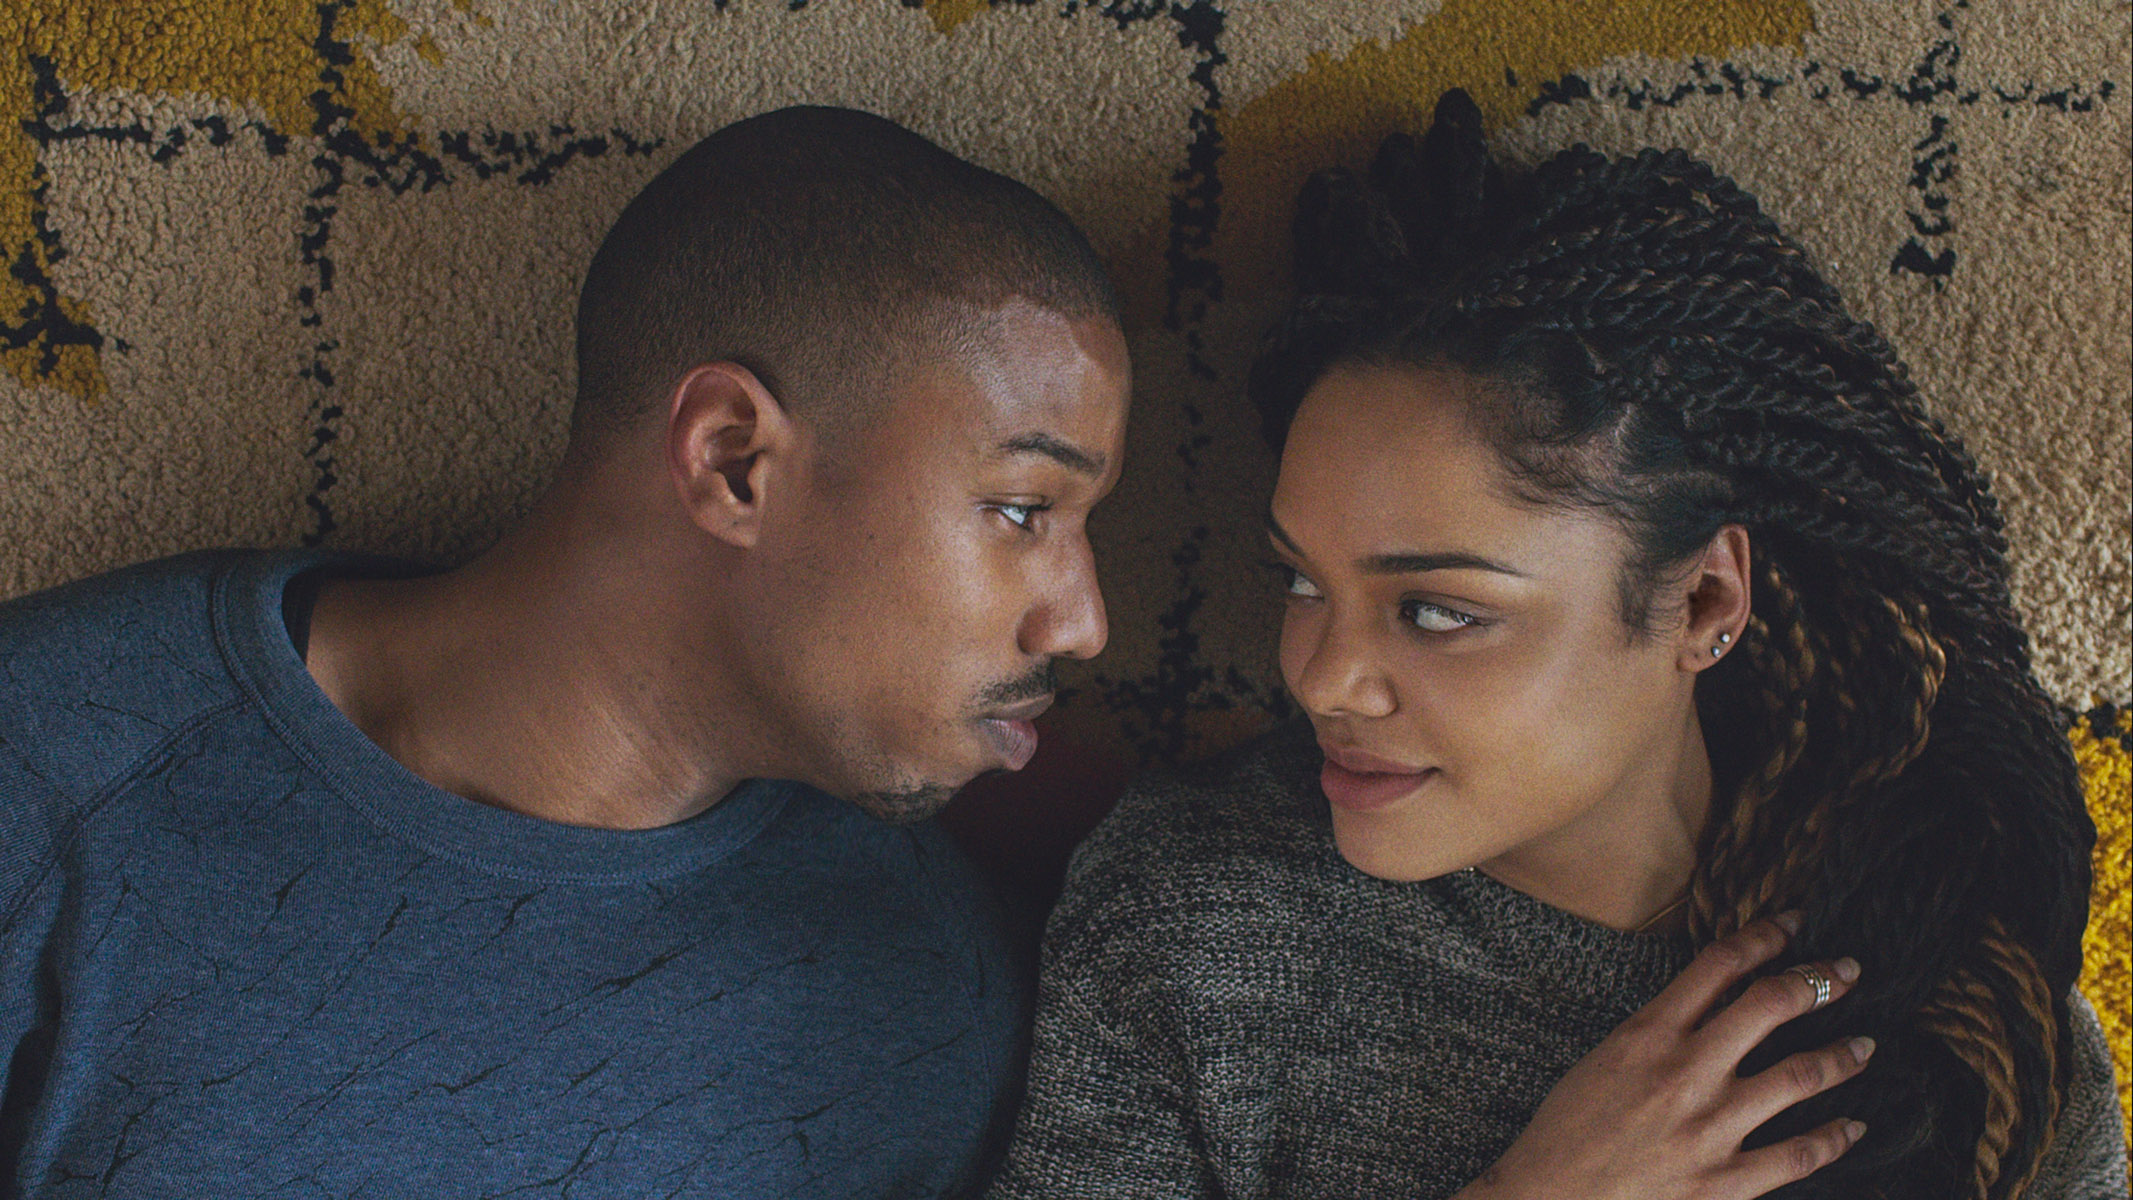 TRAILER: The Year of Tessa Thompson Continues With 'Creed II'